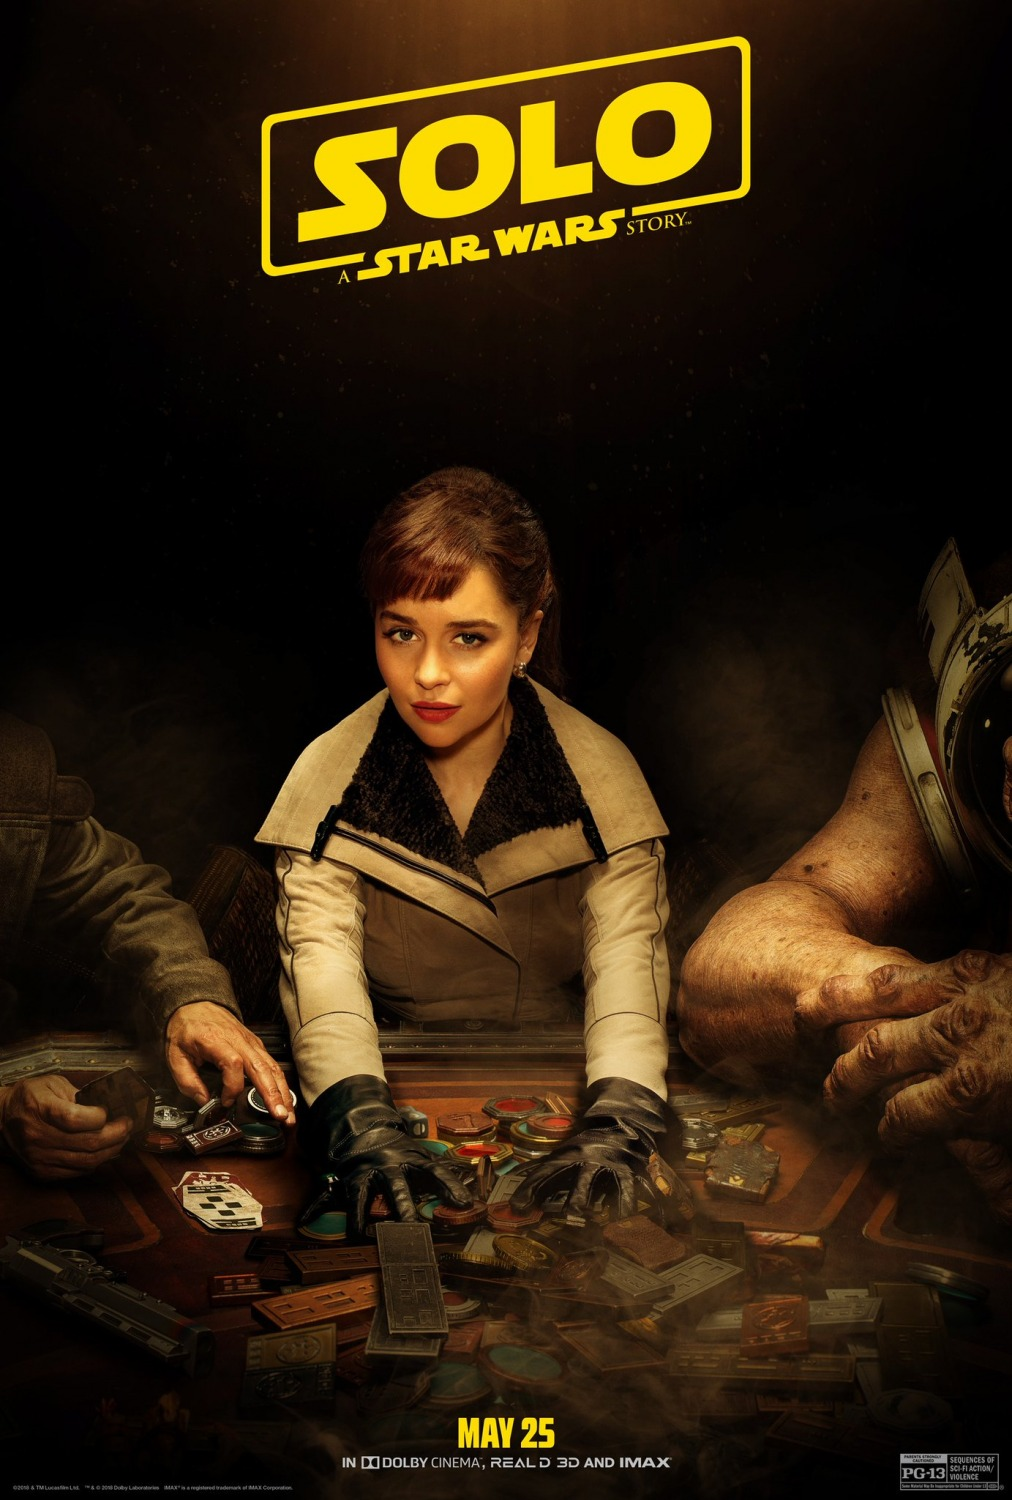 Place-Your-Bets-New-Solo-A-Star-Wars-Story-Posters-Unveiled